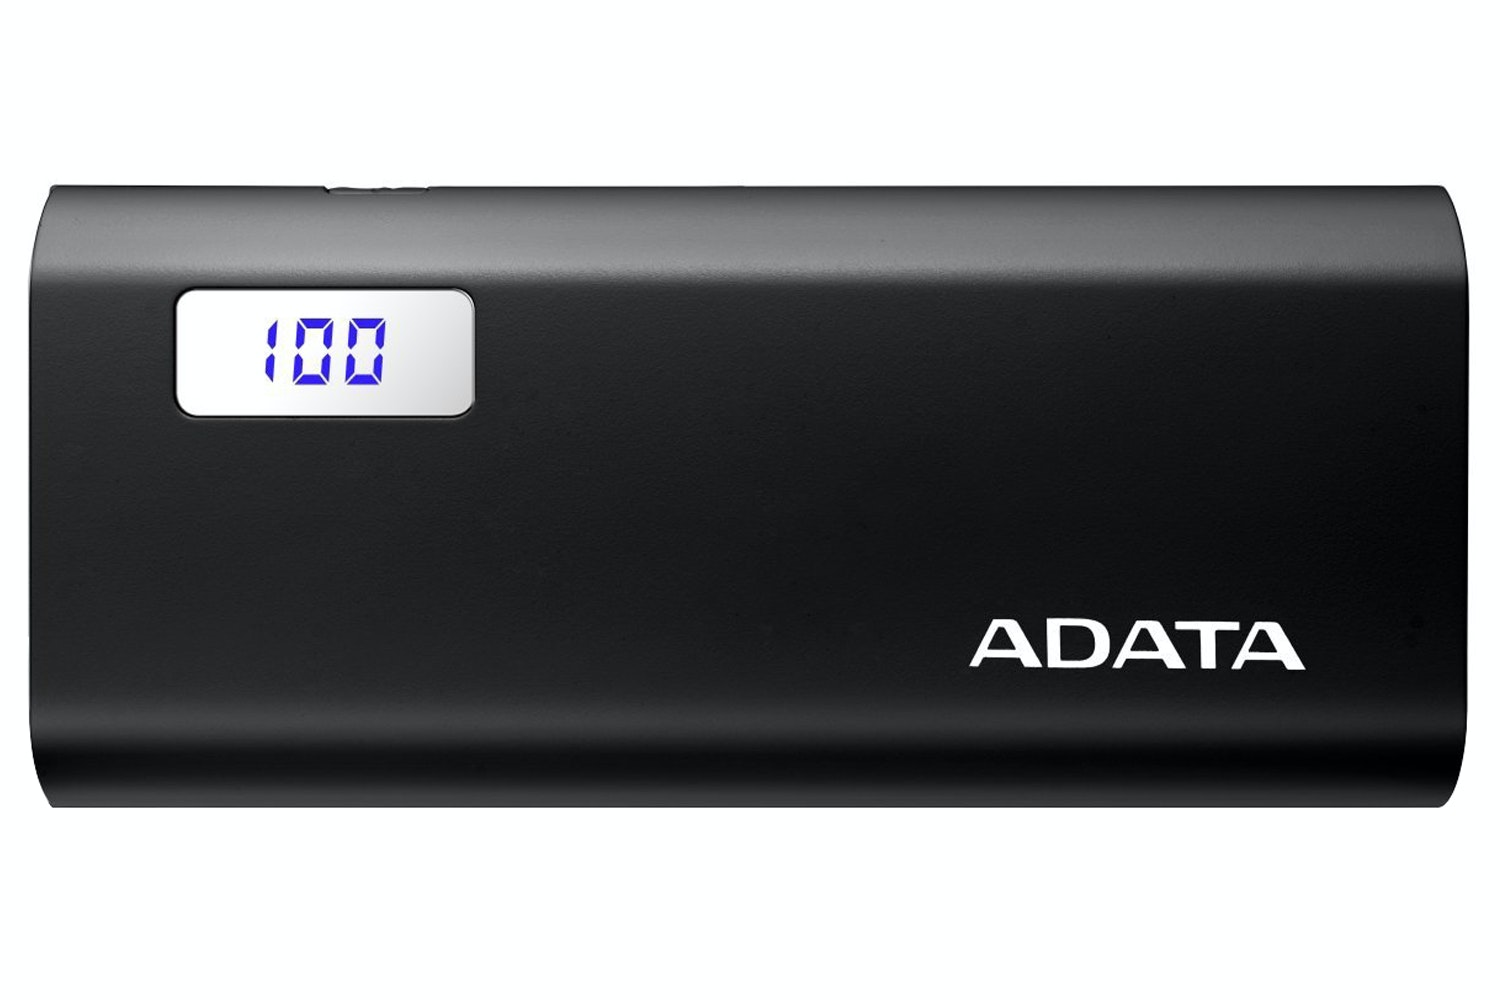 ADATA P12500D Power Bank | Black